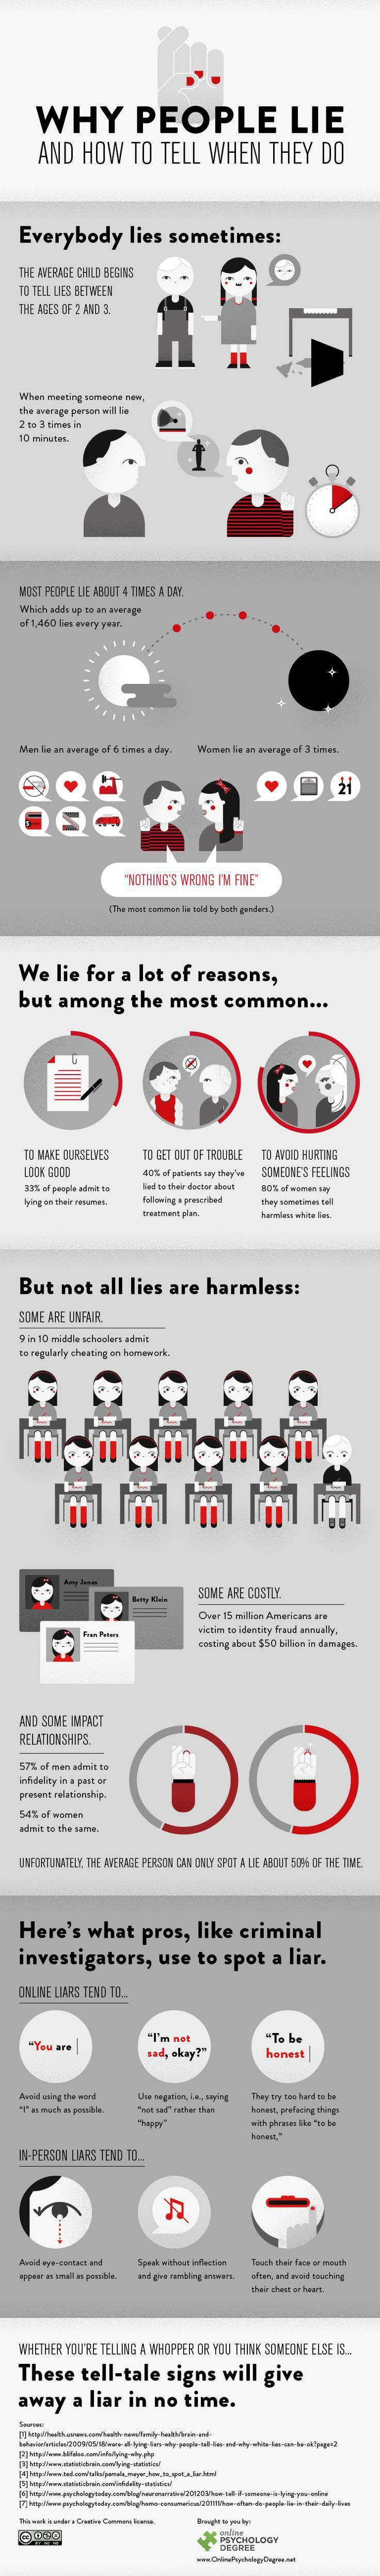 Infographic | 24 Nose Growing Statistics On Lying #infographics #graphics #digitalmedia #images #infogrphx